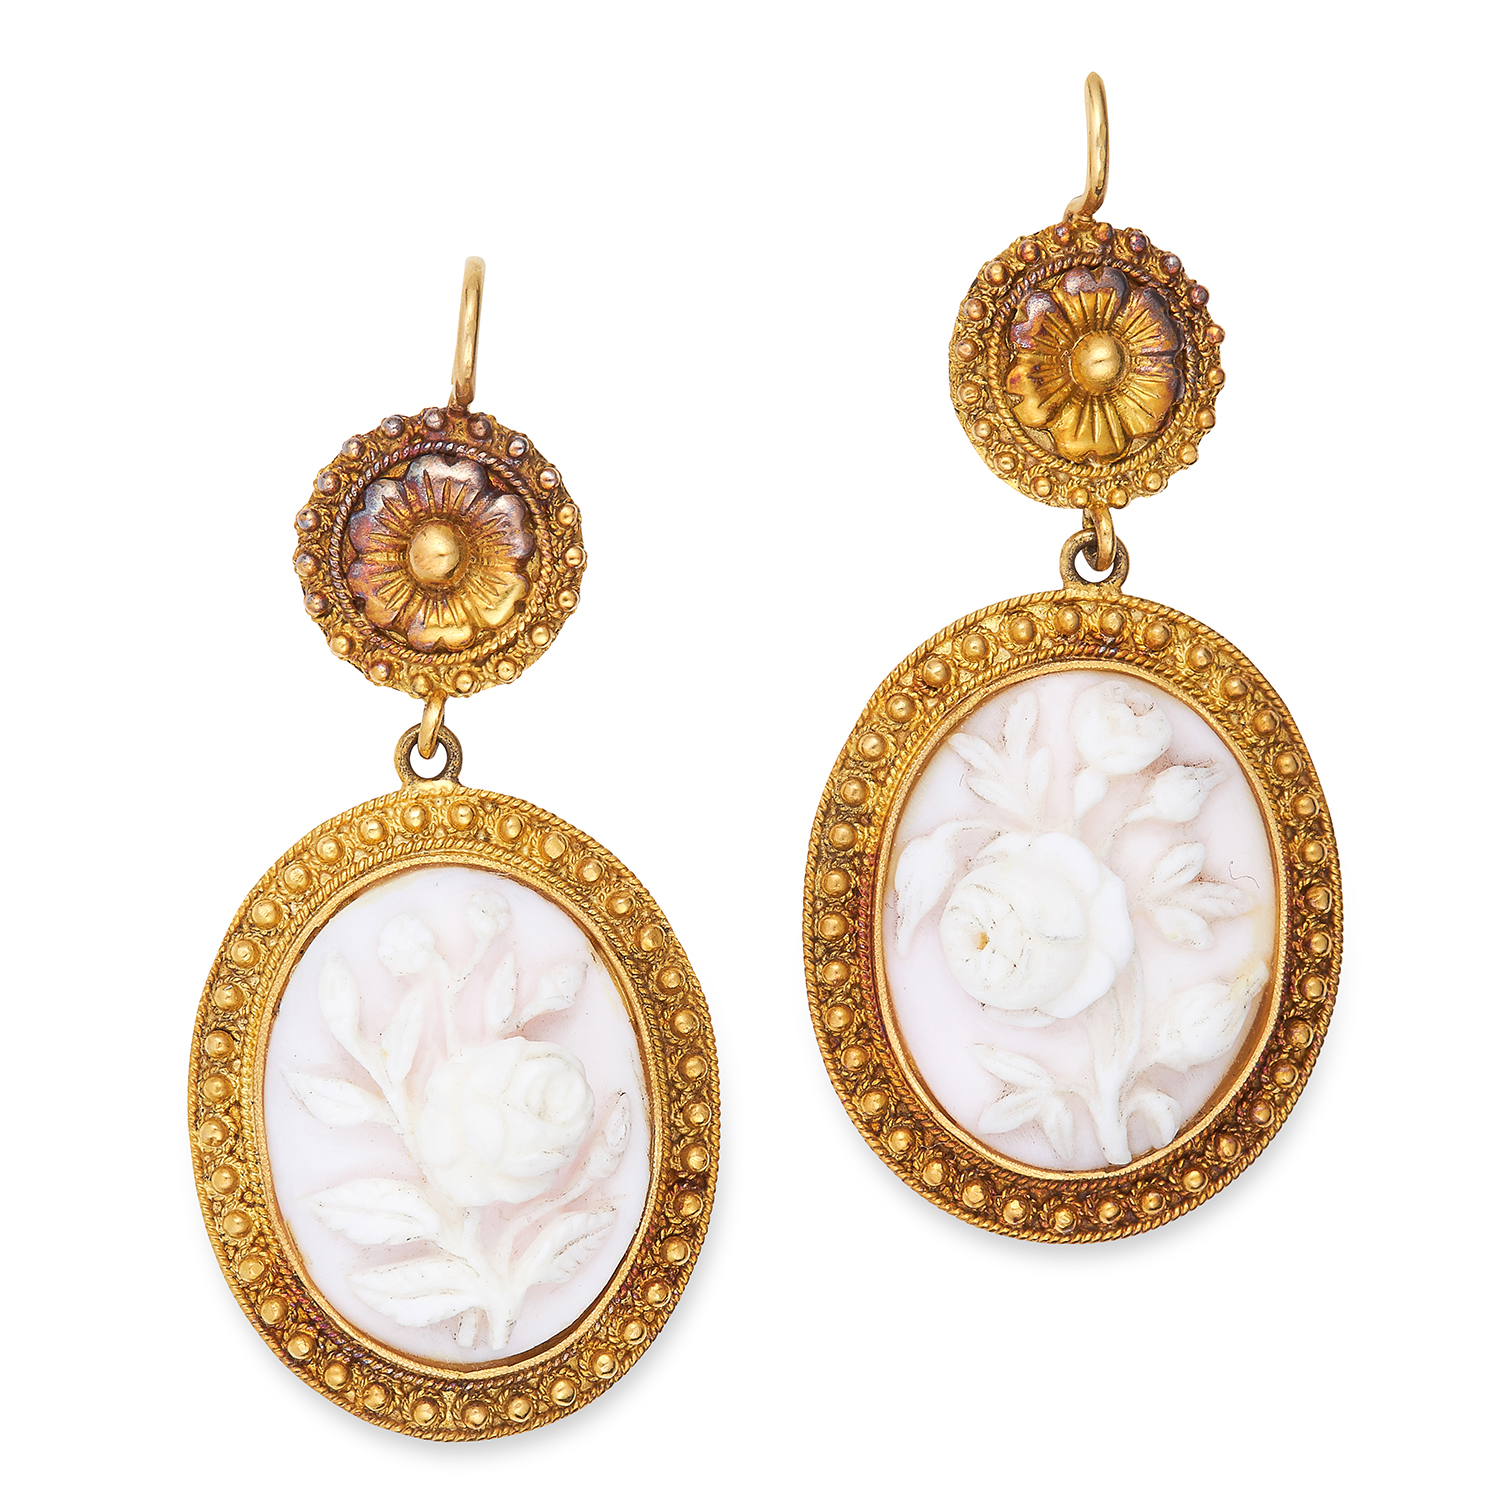 ANTIQUE CORAL CAMEO EARRING AND NECKLACE SUITE in Etruscan revival design, set with carved coral - Bild 2 aus 3